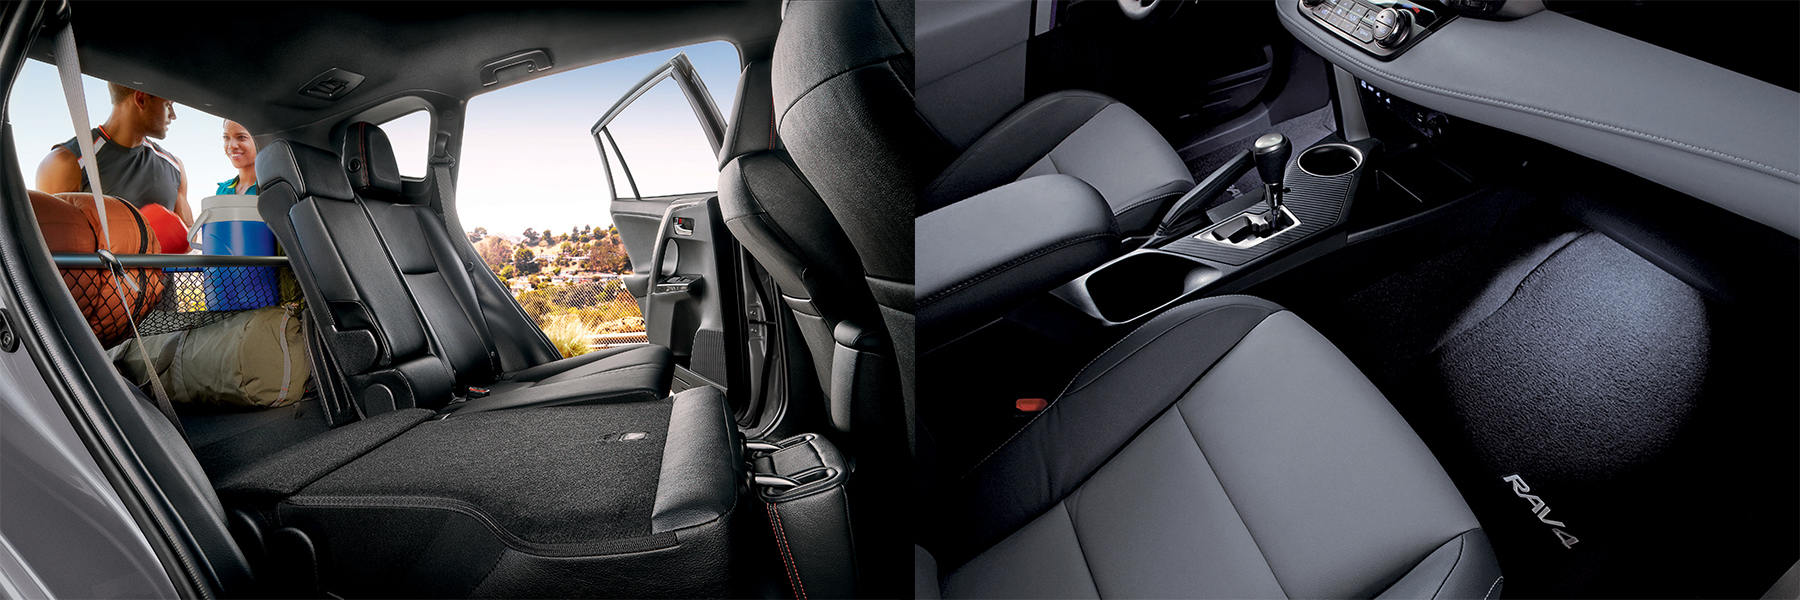 Toyota RAV4 bucket seats at Freedom Toyota of Hamburg, PA